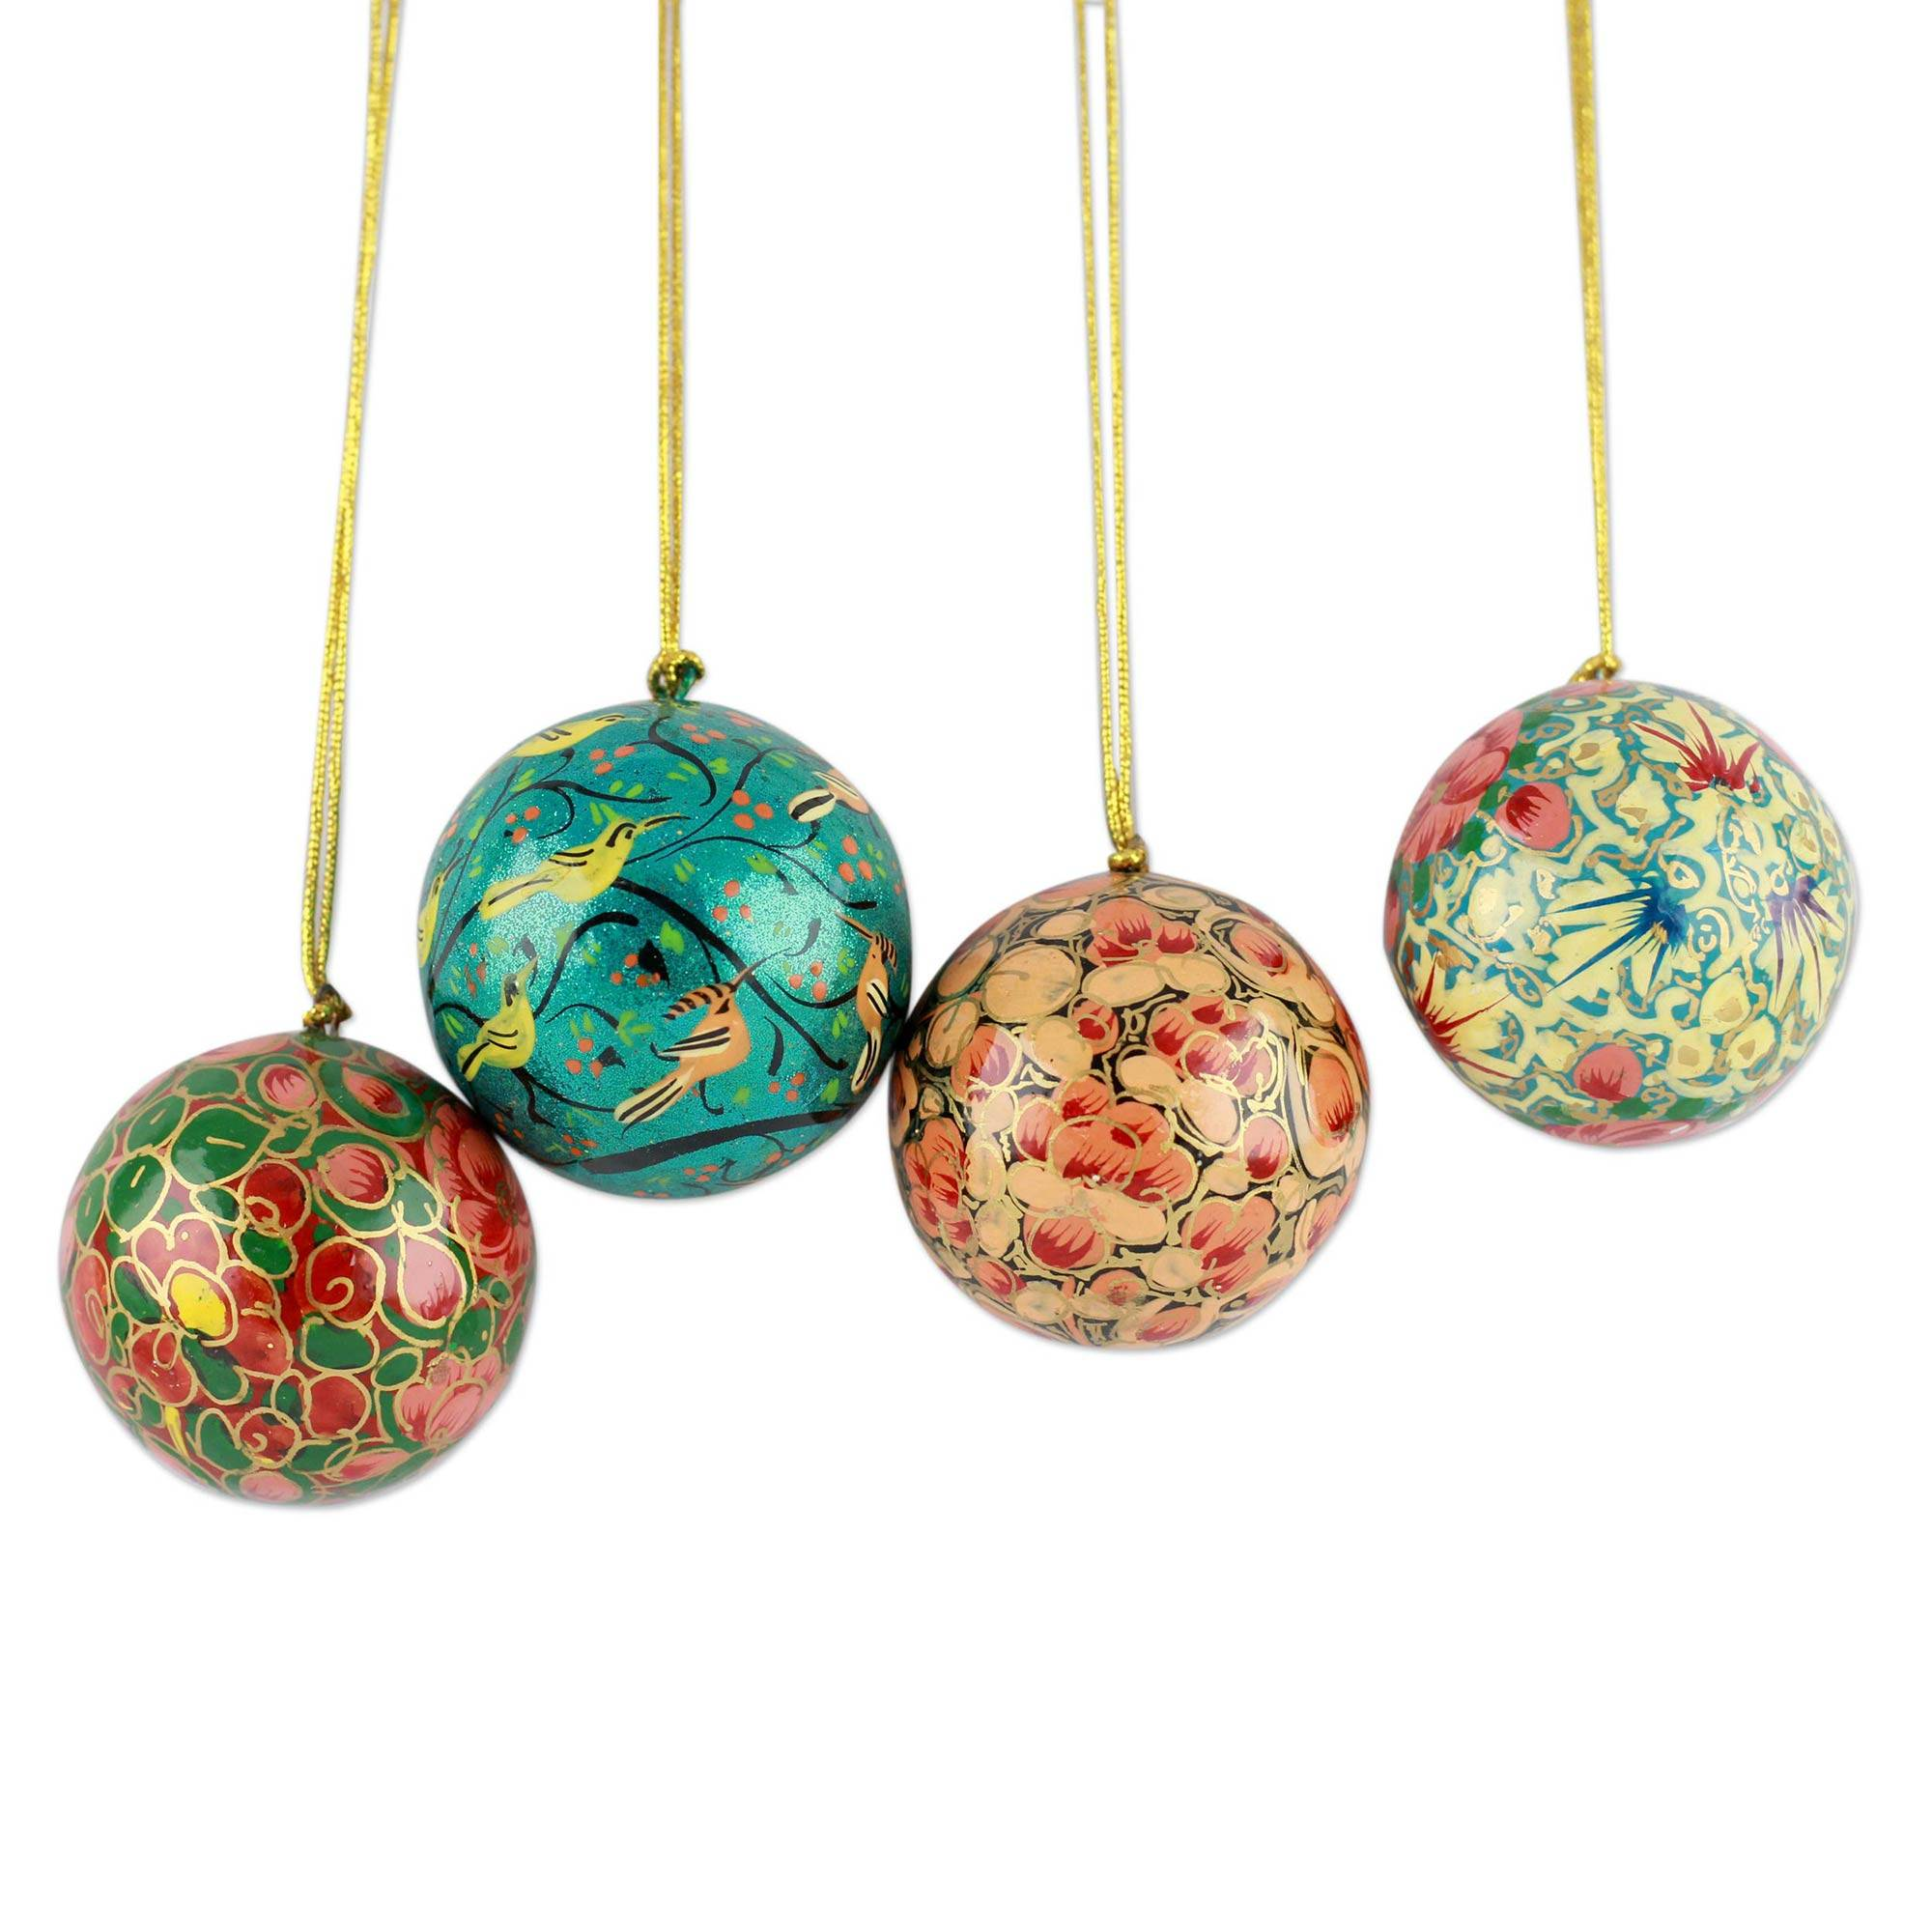 Handmade Papier Mache Christmas Ornaments